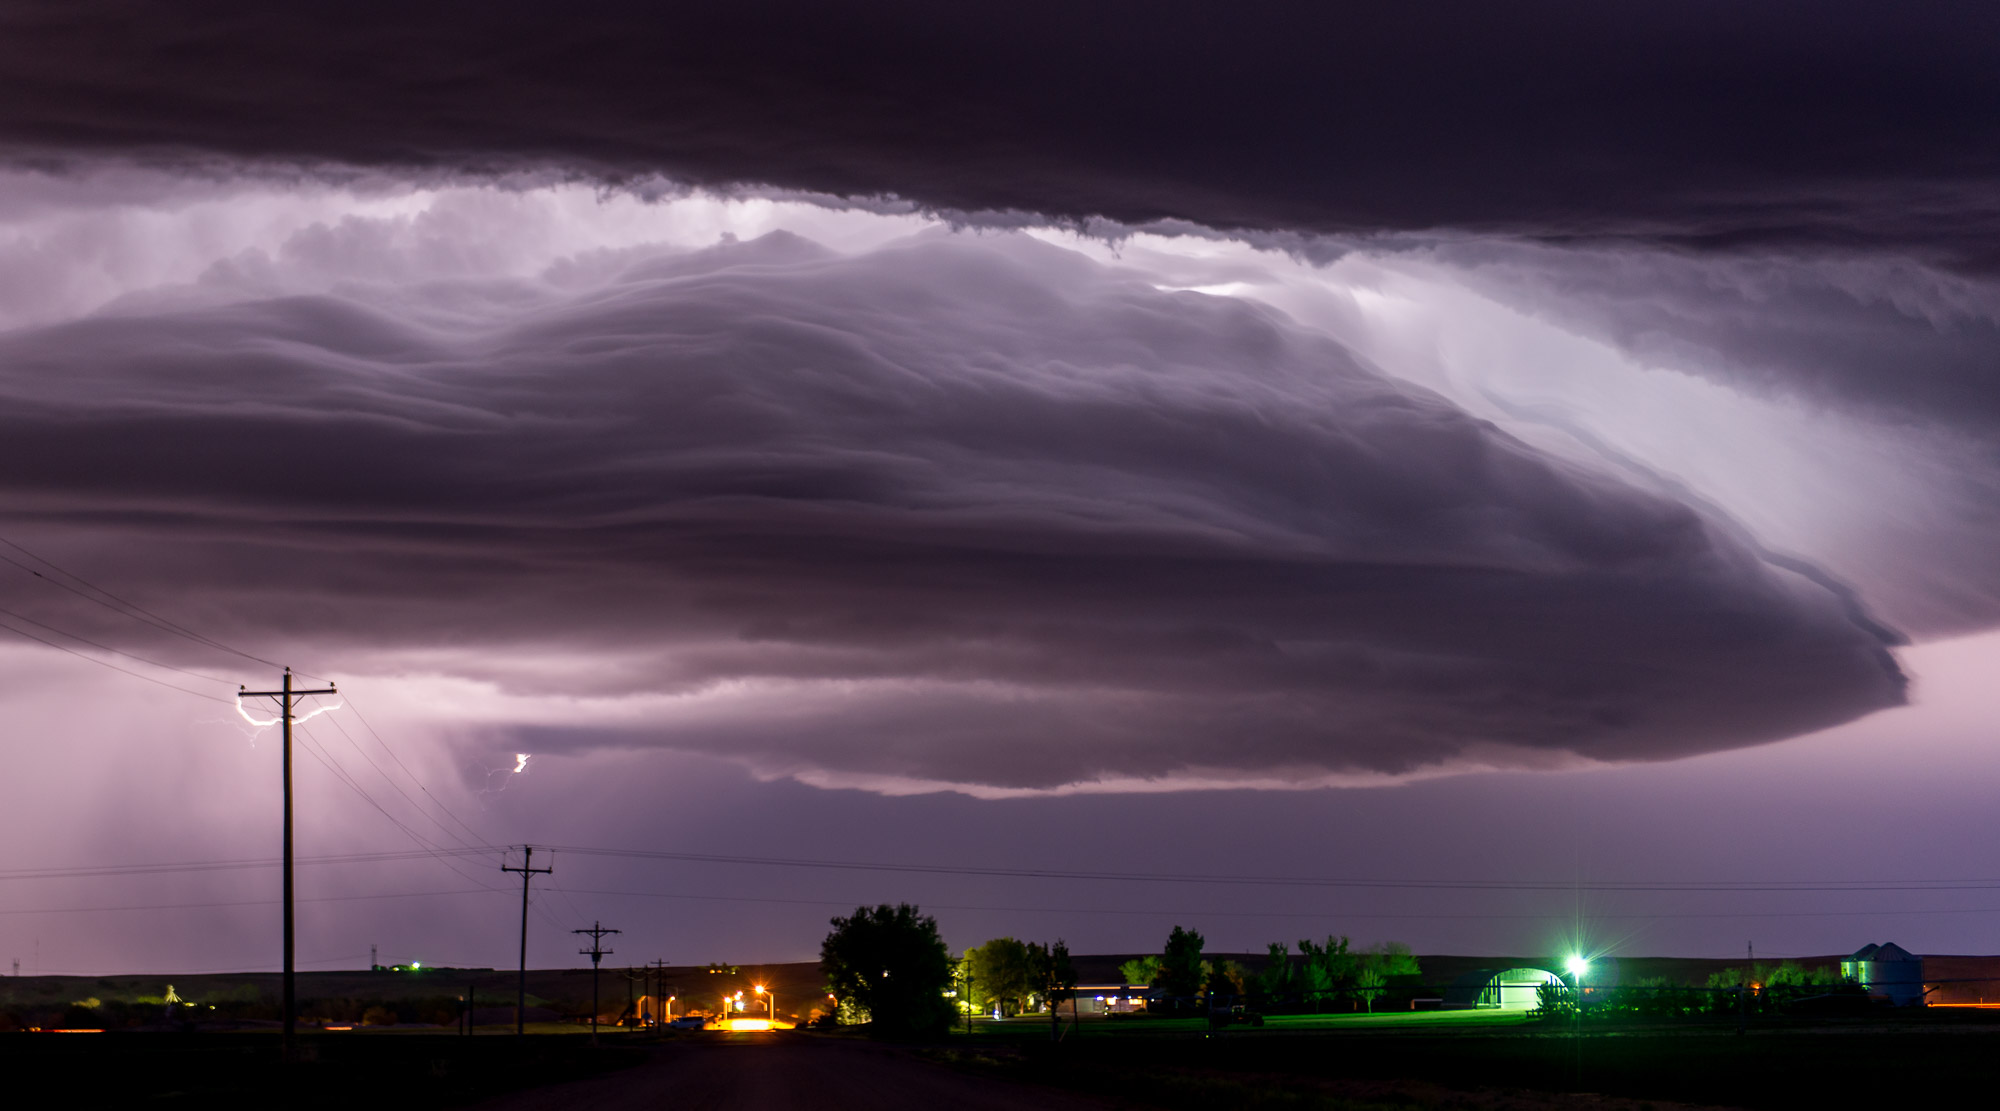 Mothership storm cloud - Paxton, Nebraska